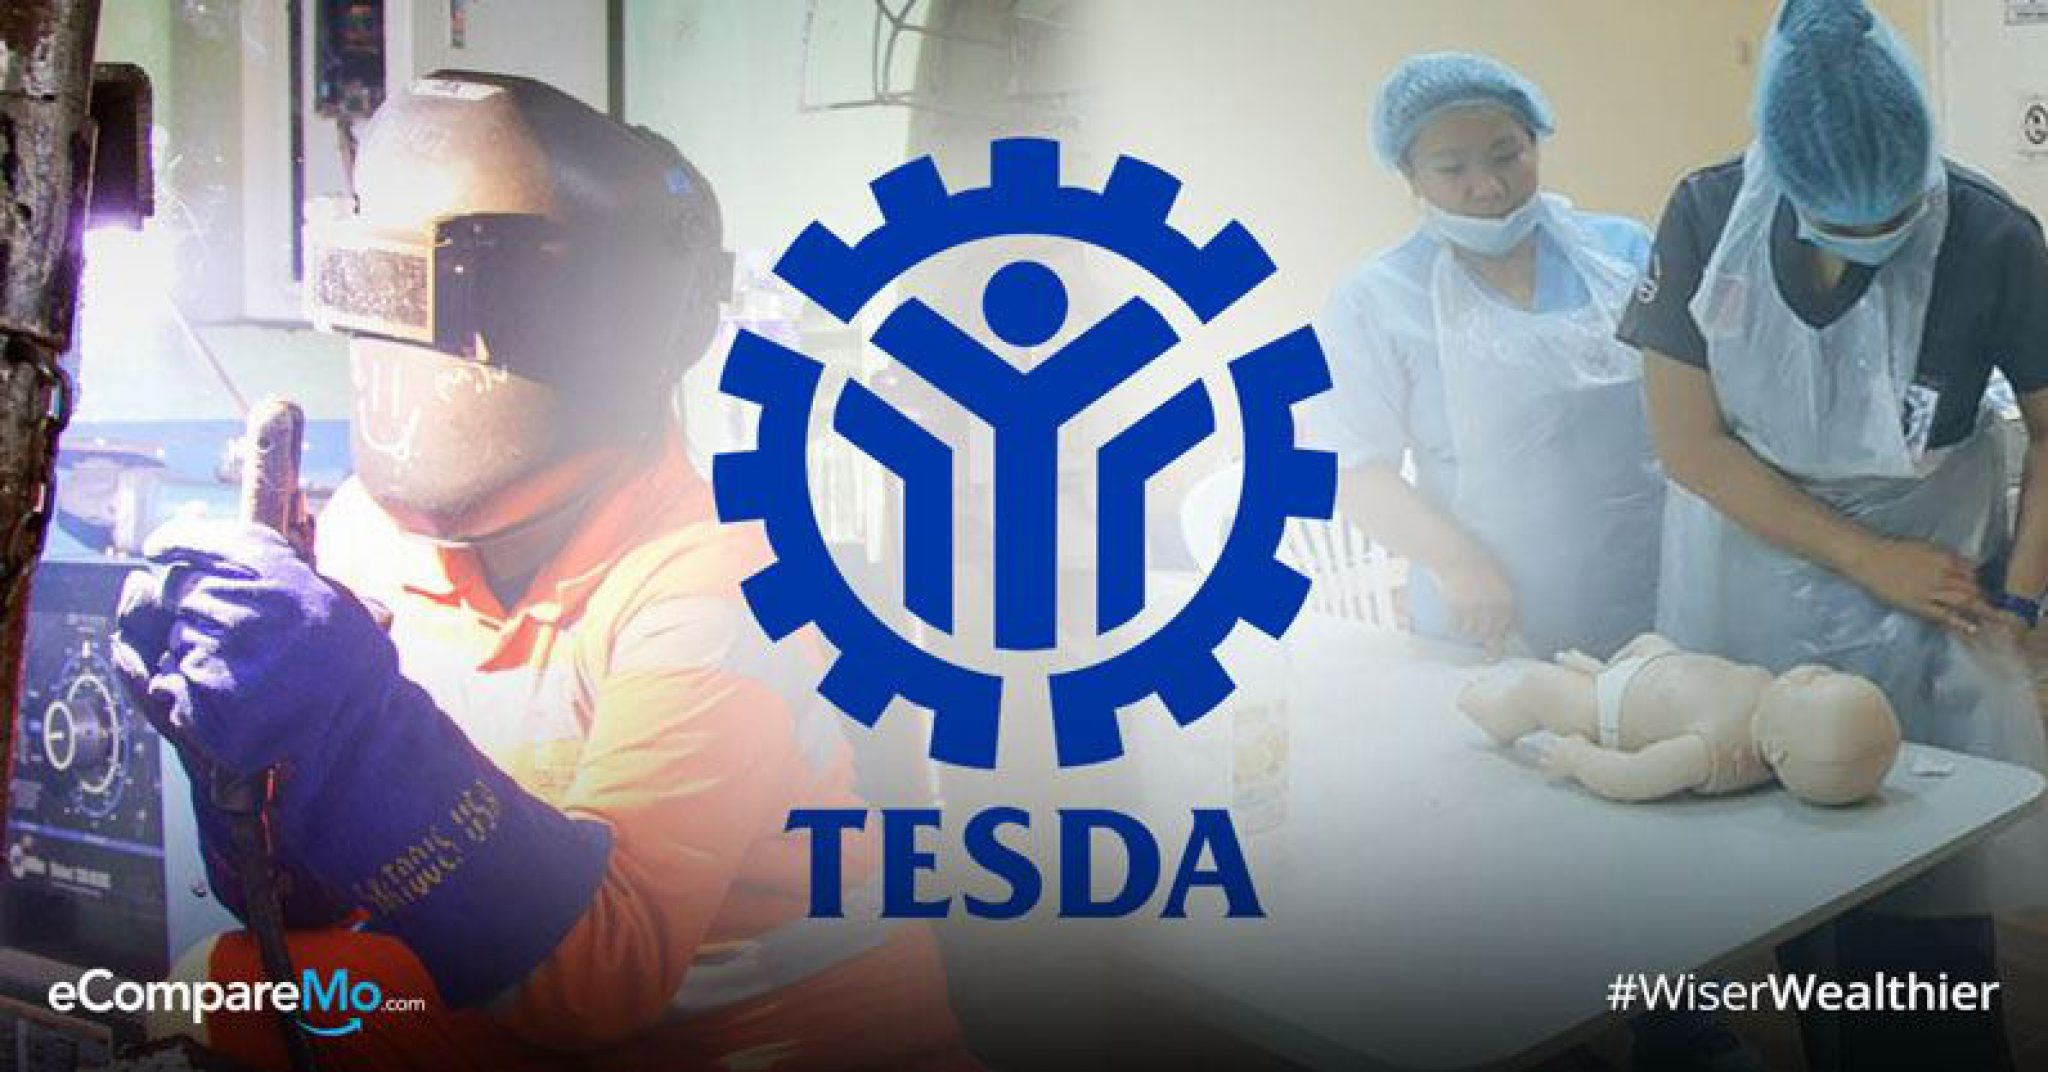 All About TESDA